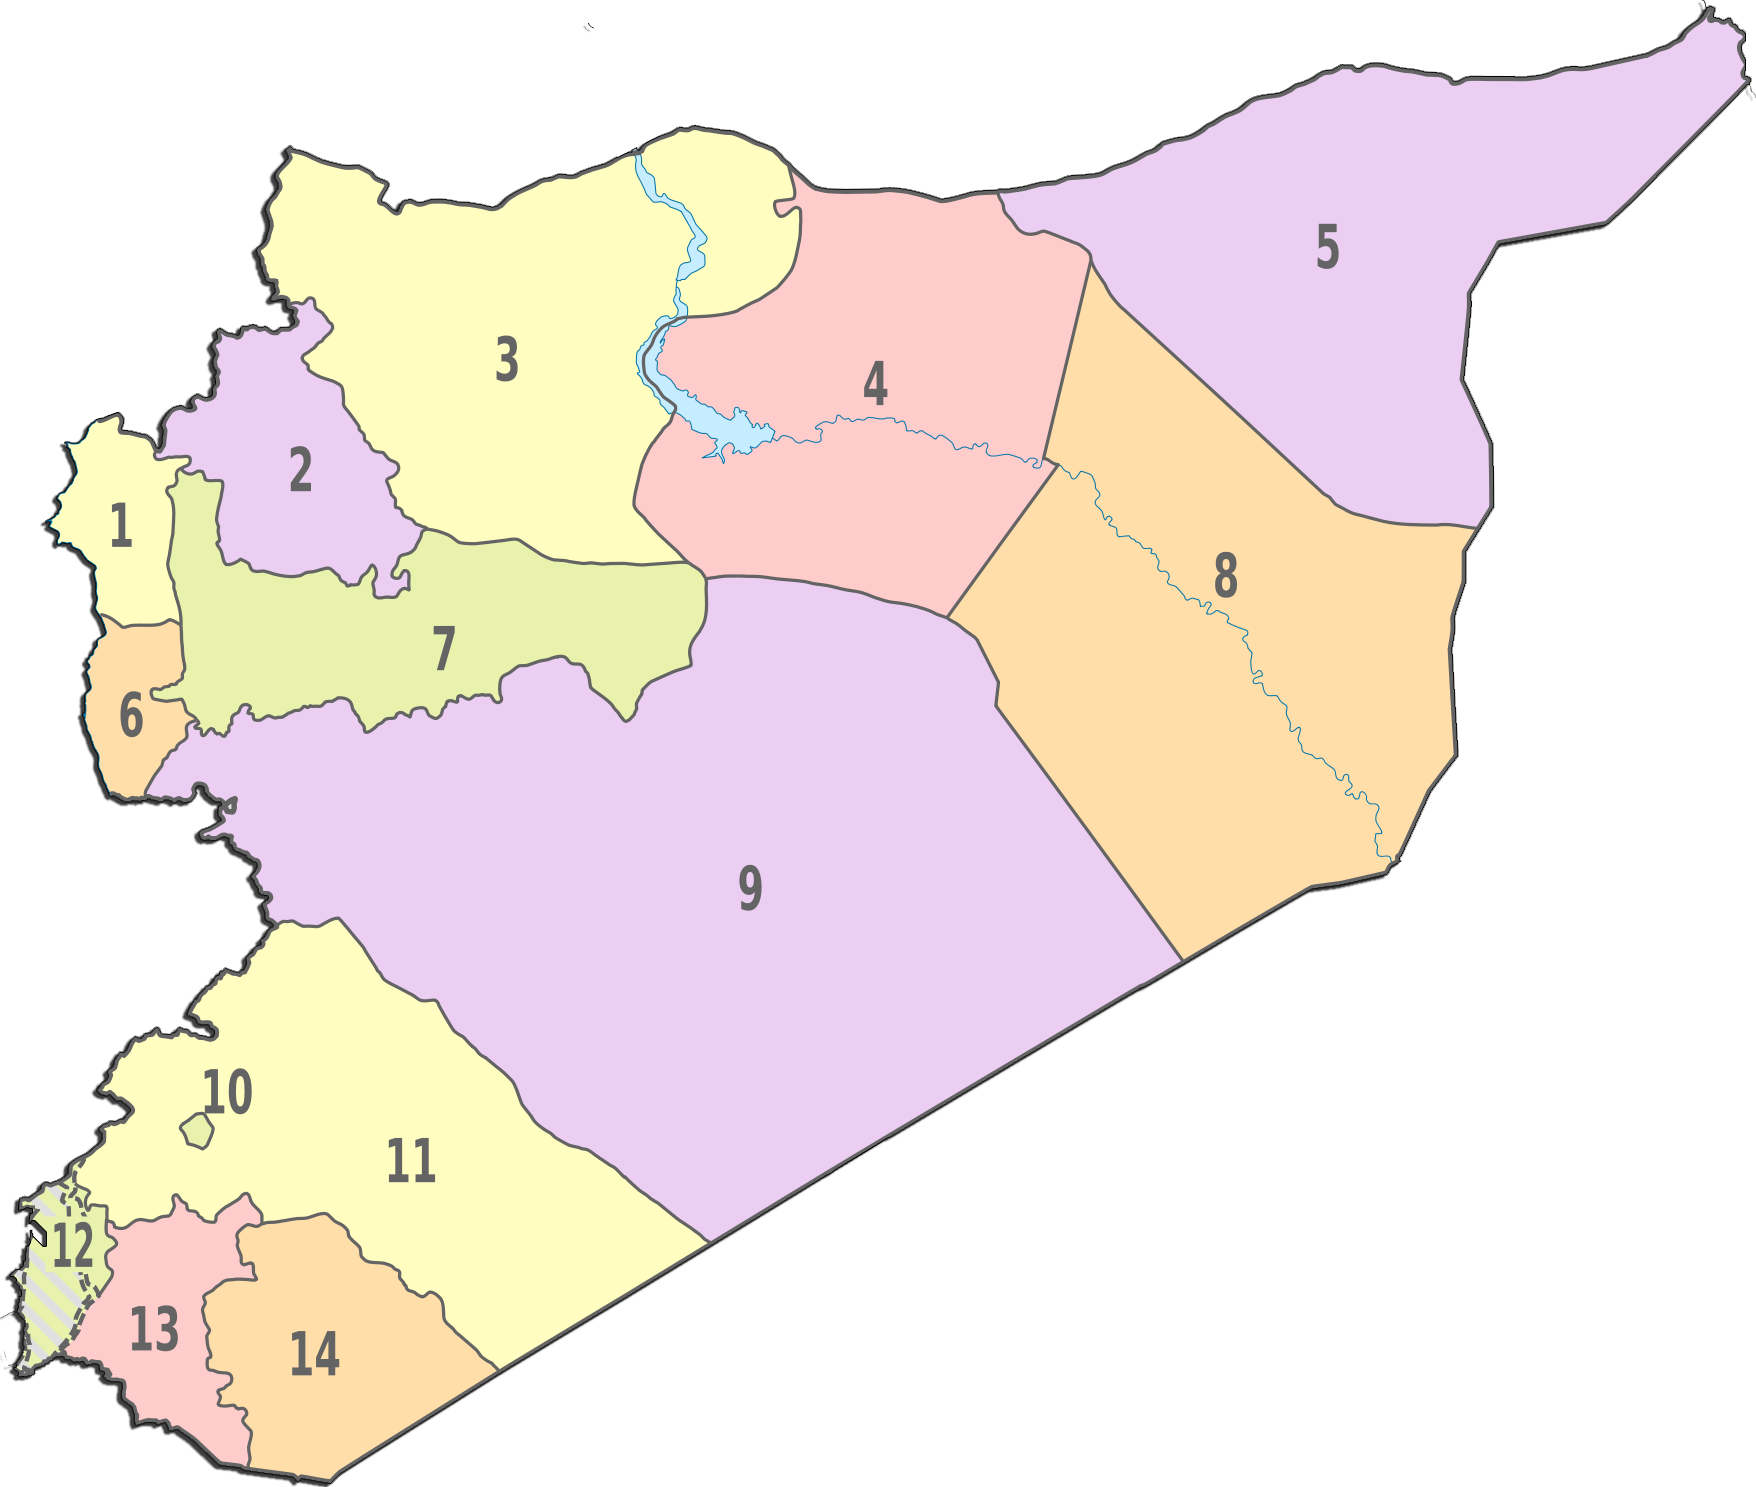 Syria Administrative divisions Map